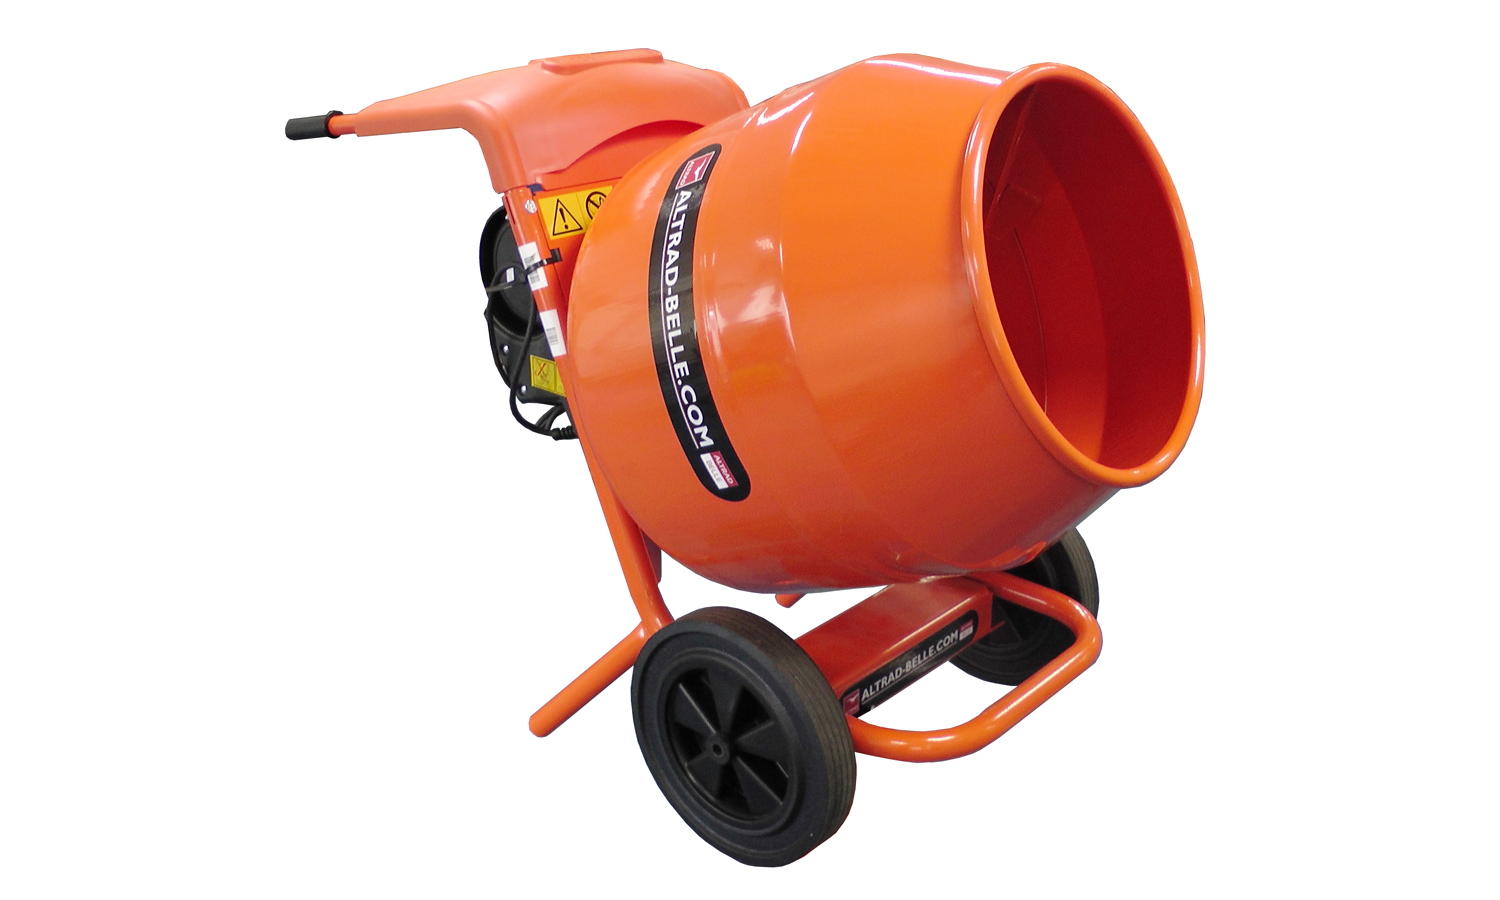 Tip-up Petrol Concrete Mixer Product Page